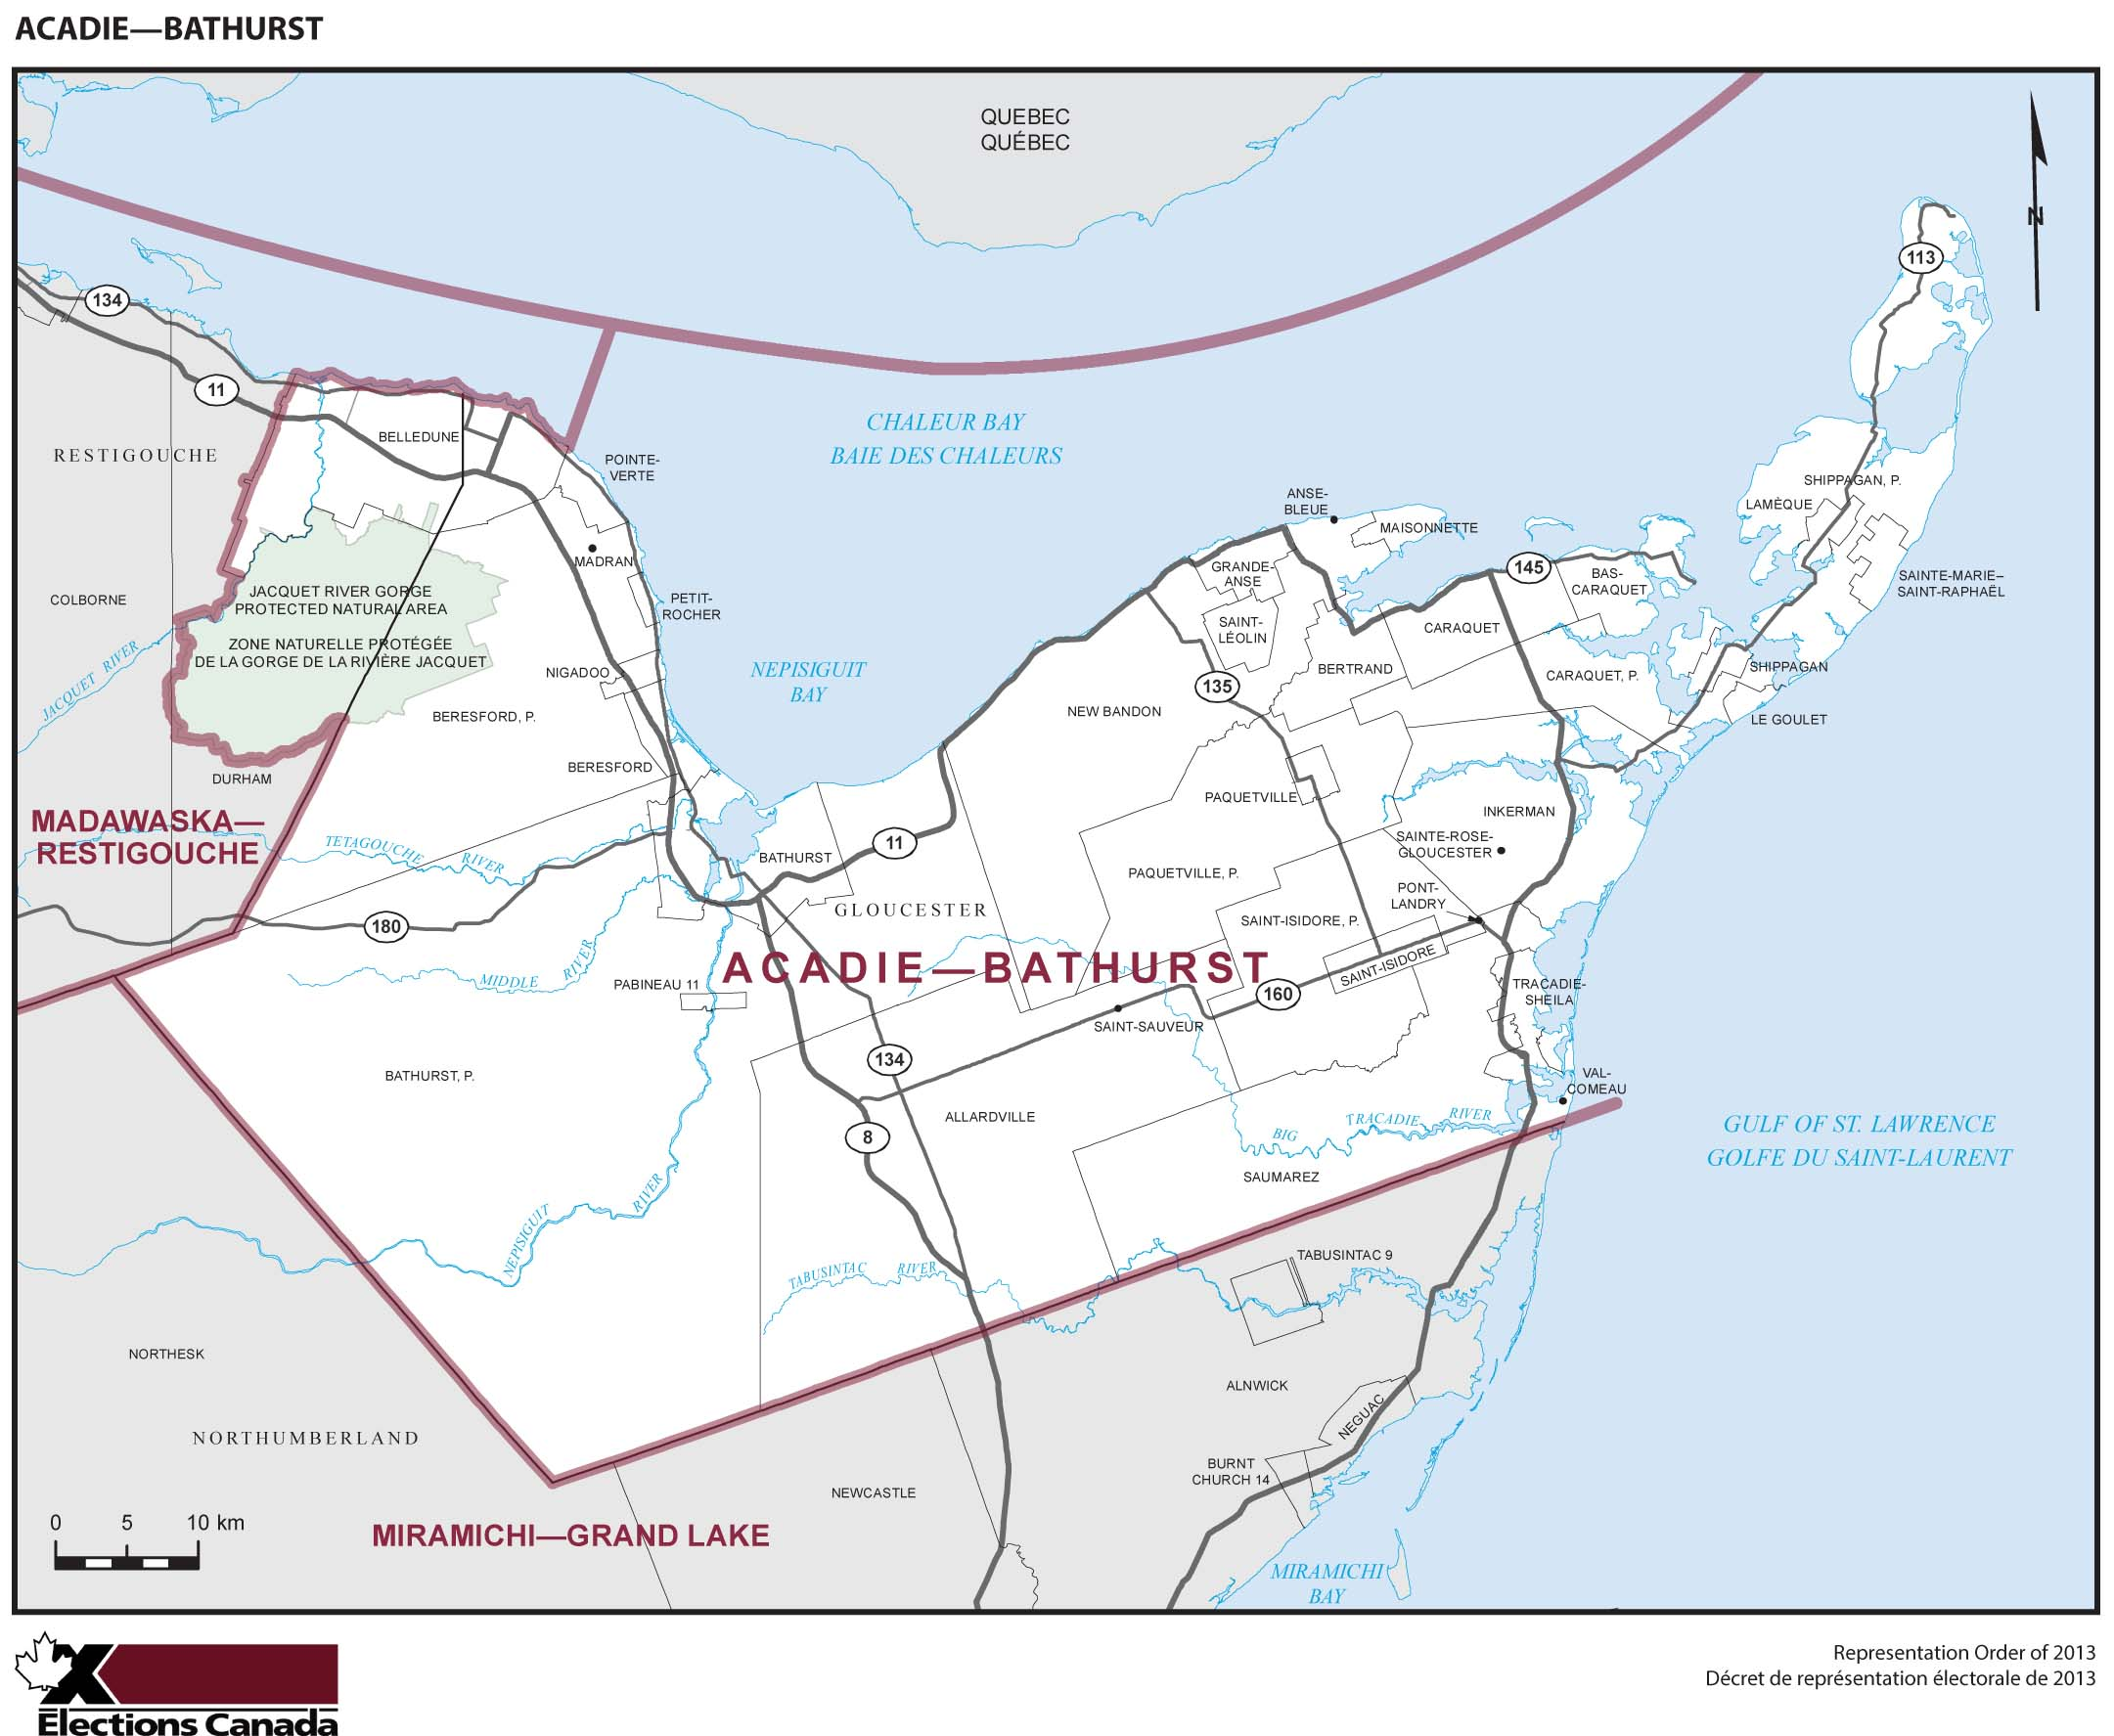 Map: Acadie--Bathurst, Federal electoral district, 2013 Representation Order (in white), New Brunswick